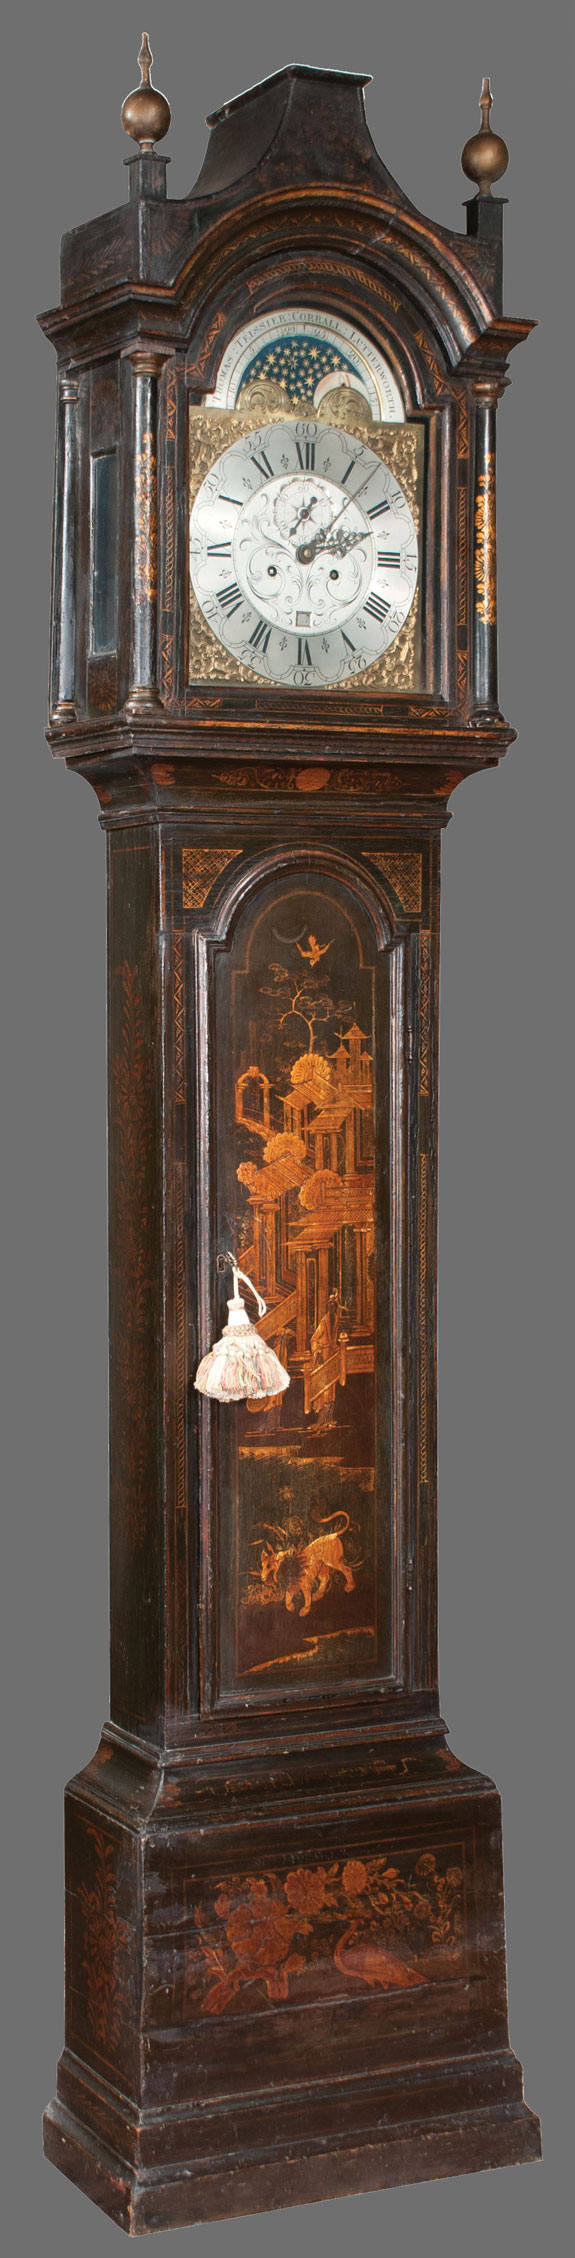 Black And Gold Georgian Chinoiserie Lacquered Grandfather Clock